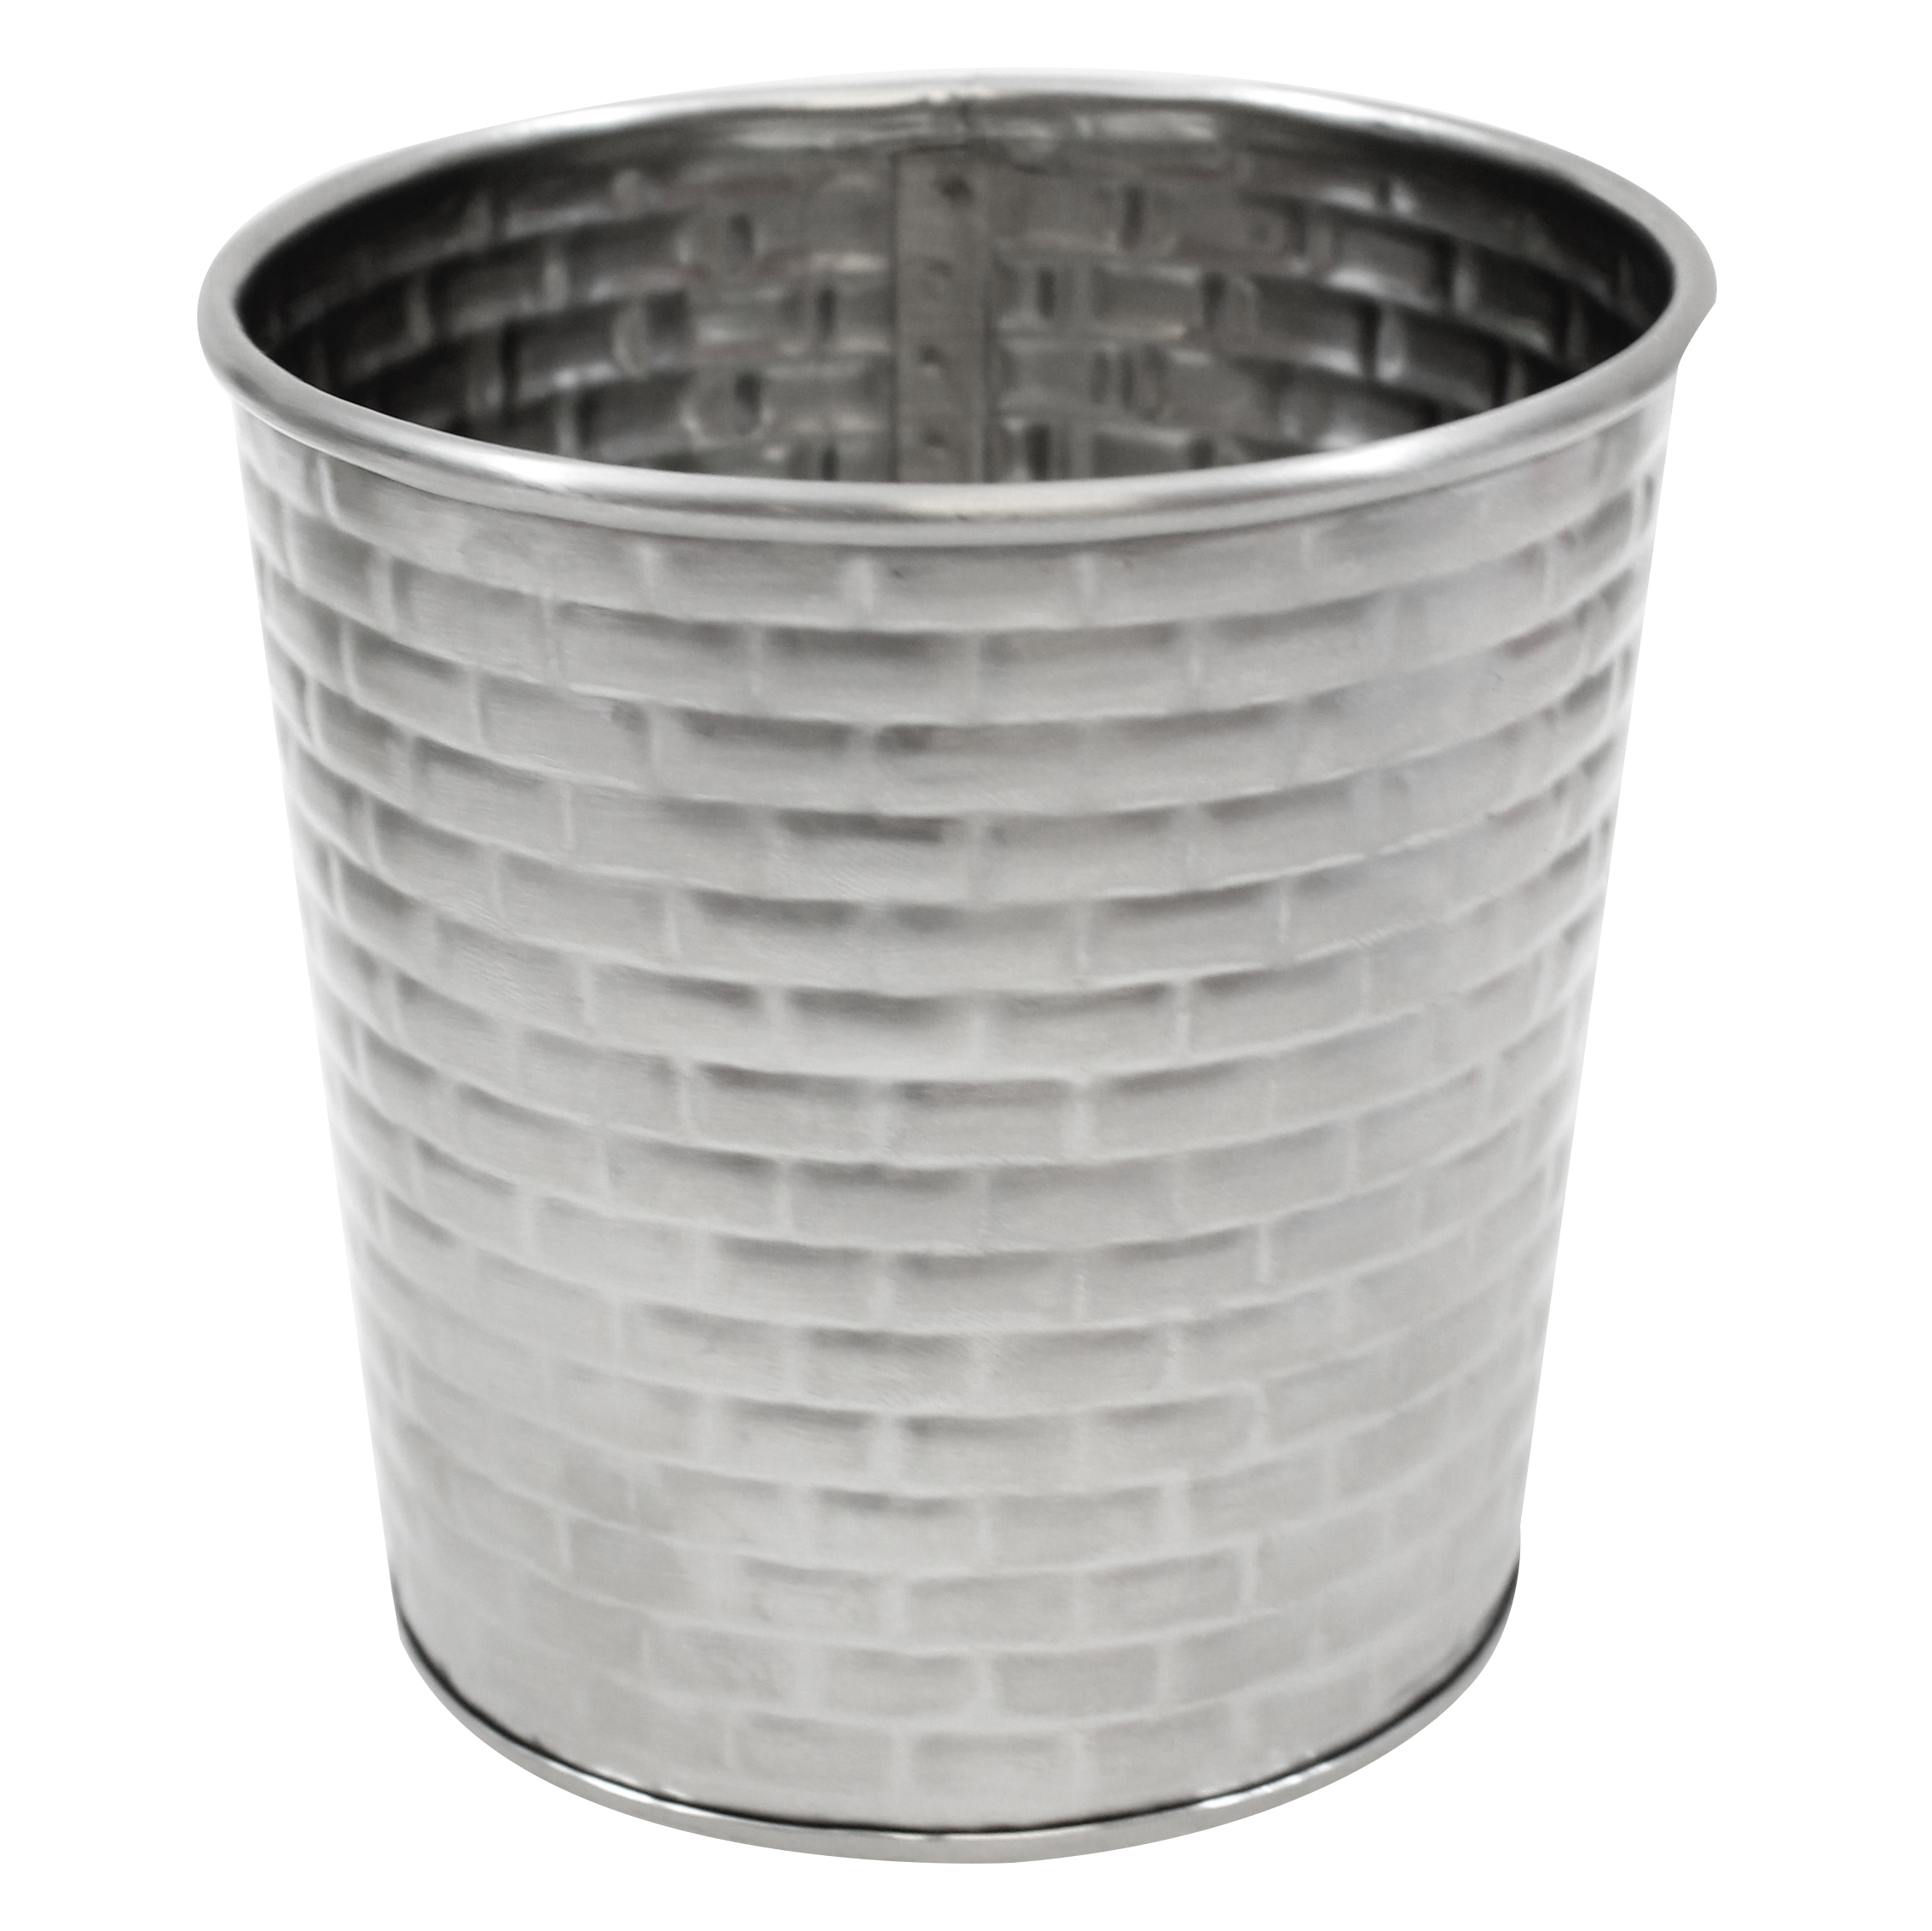 TableCraft Products GTSS31 cups, metal